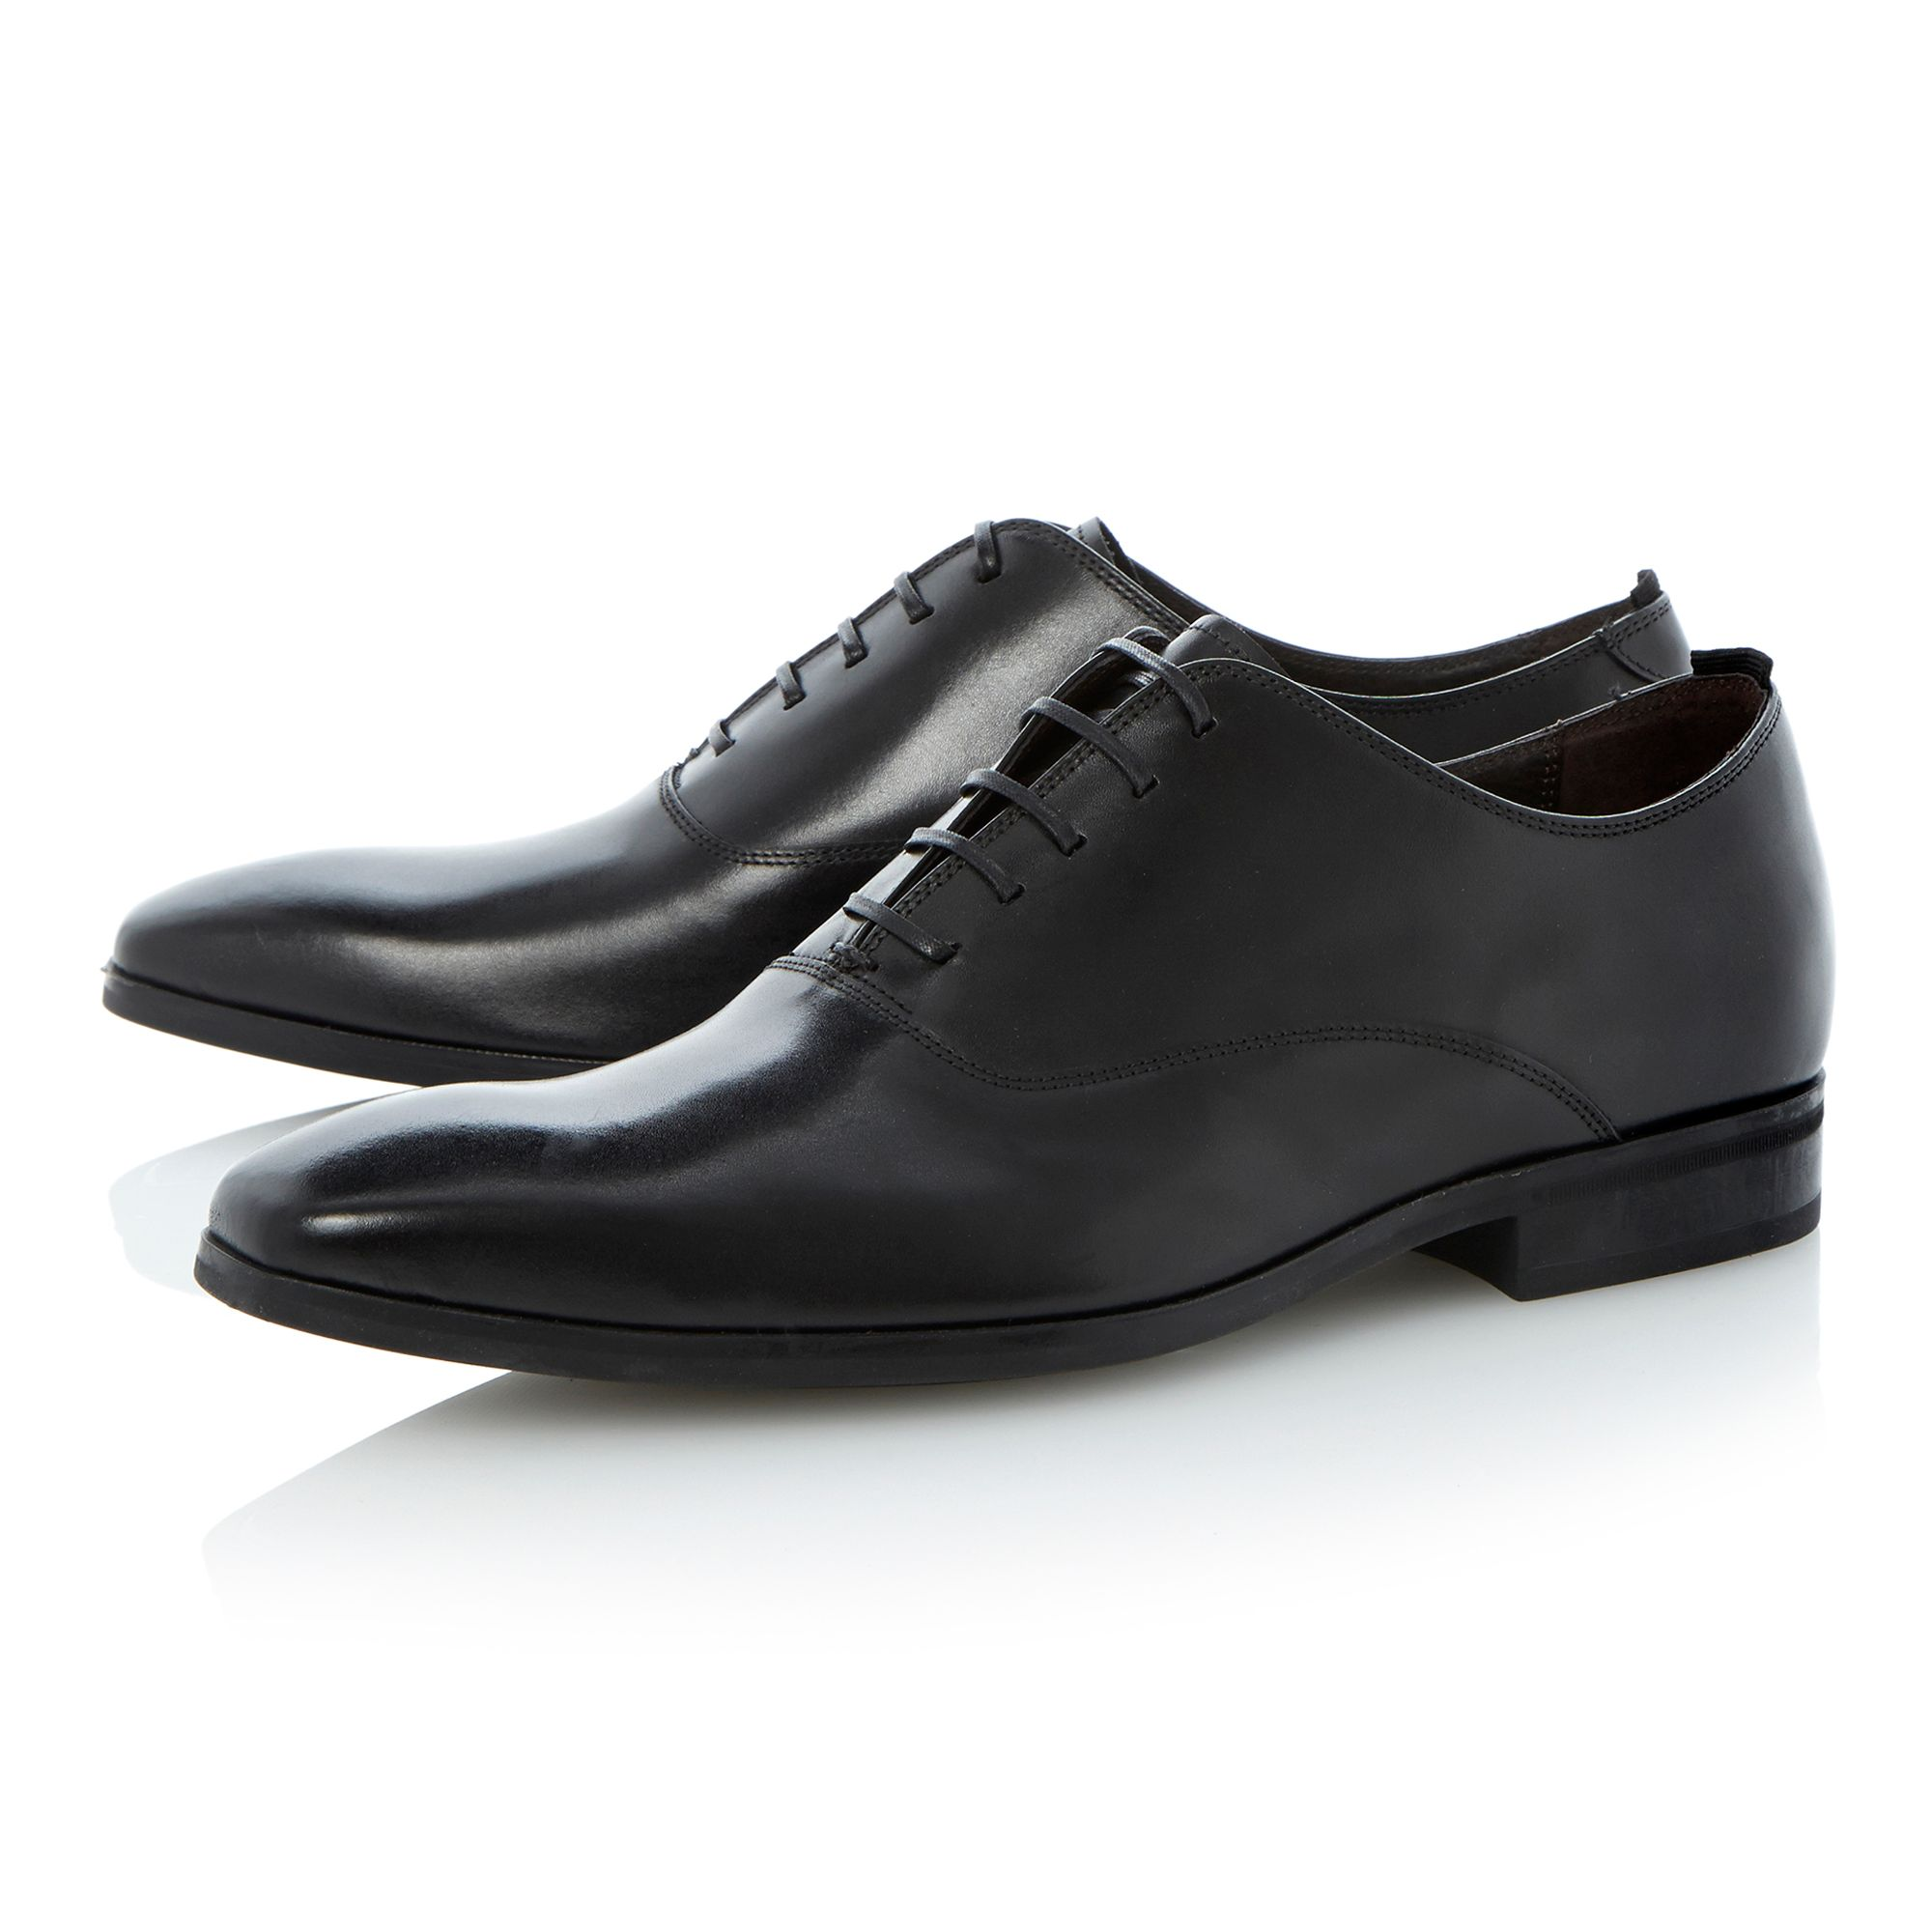 Accountable squared toe oxford shoe